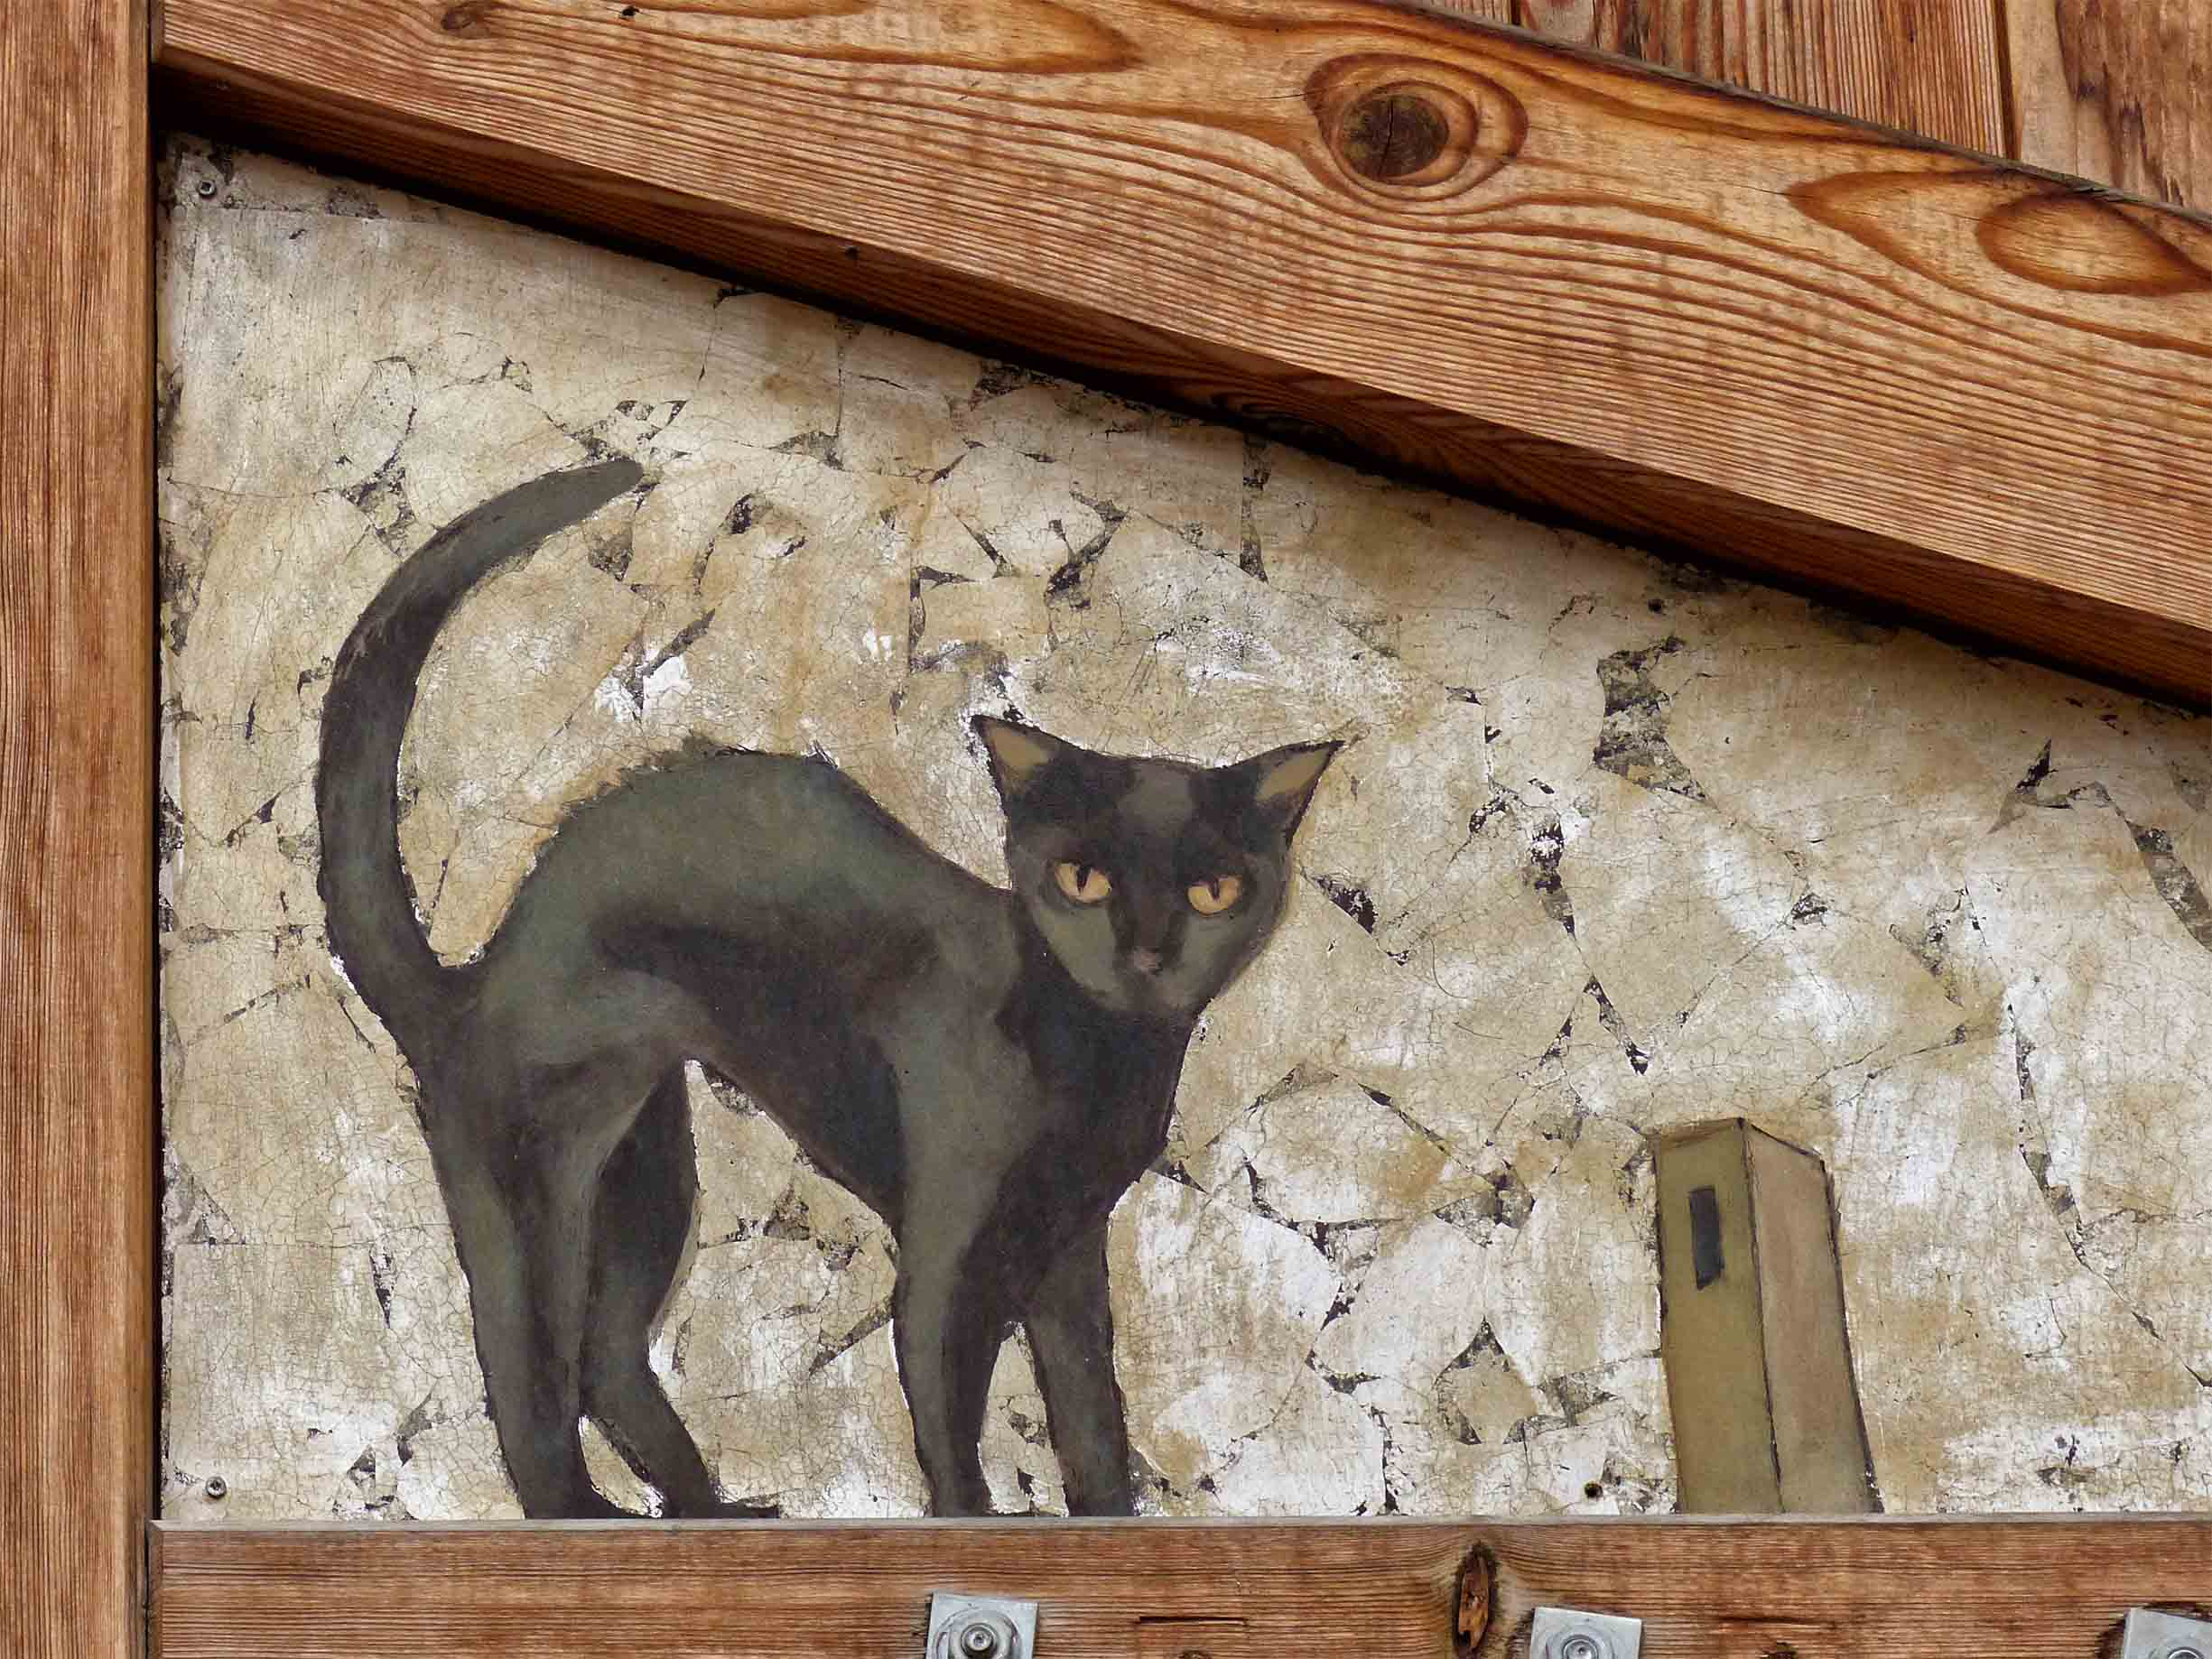 Painting of a black cat on a wall